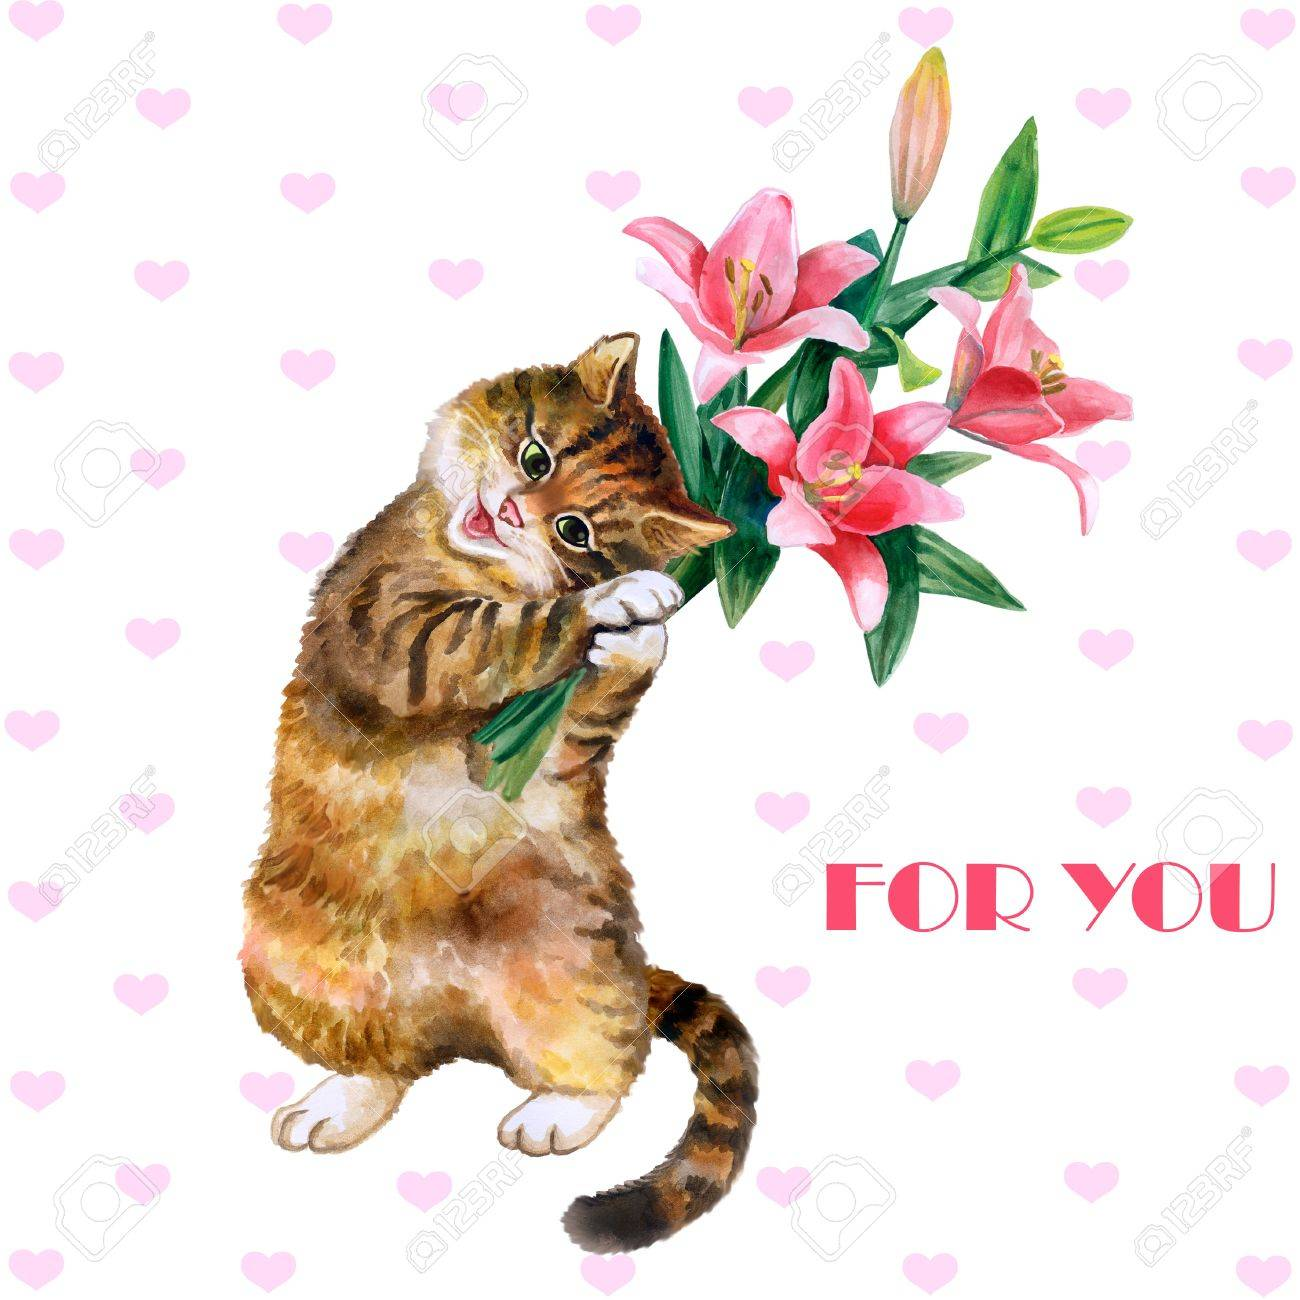 Cute Watercolor Greeting Card With Cat And Flowers Isolated On White